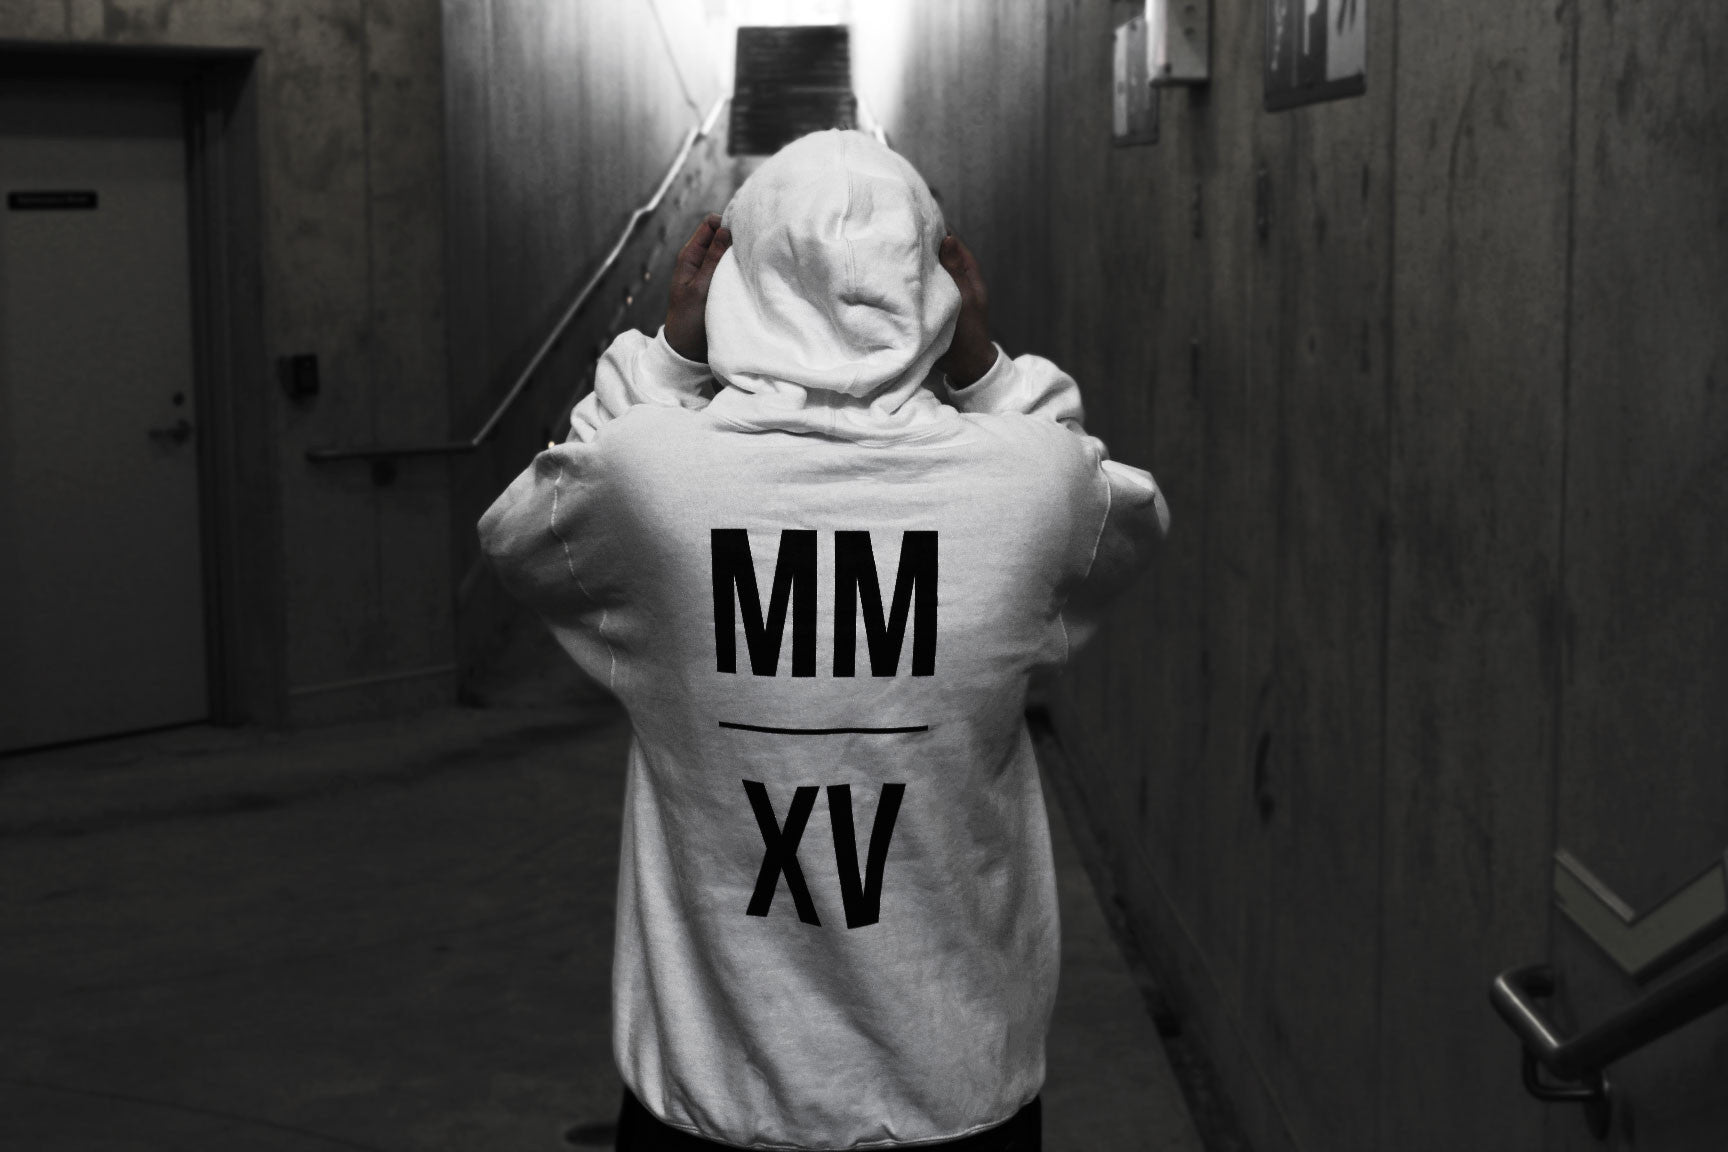 MMXV menswear hoodie by Ben Alfy